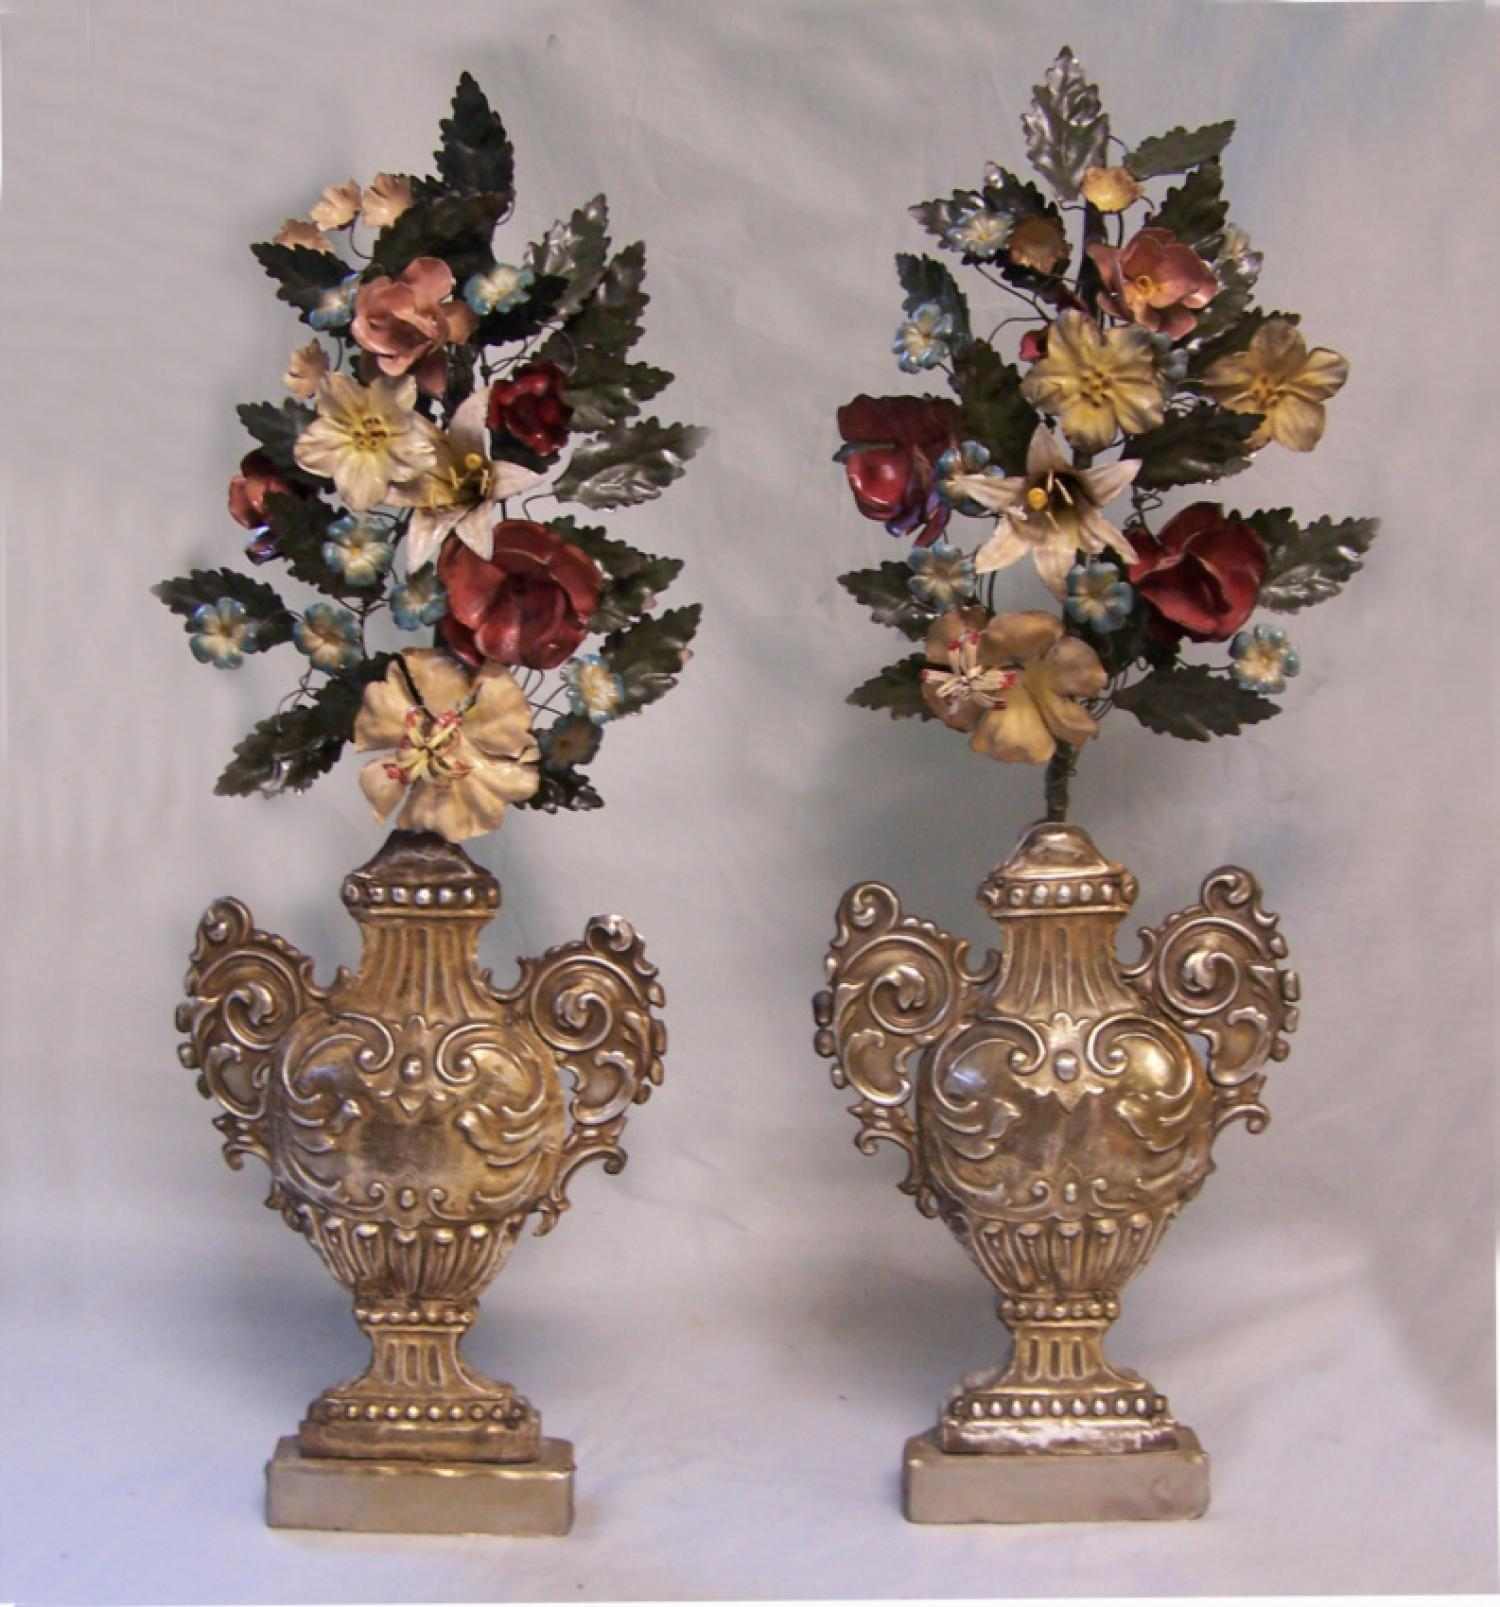 Pair of 18th C Italian painted tole floral arrangements